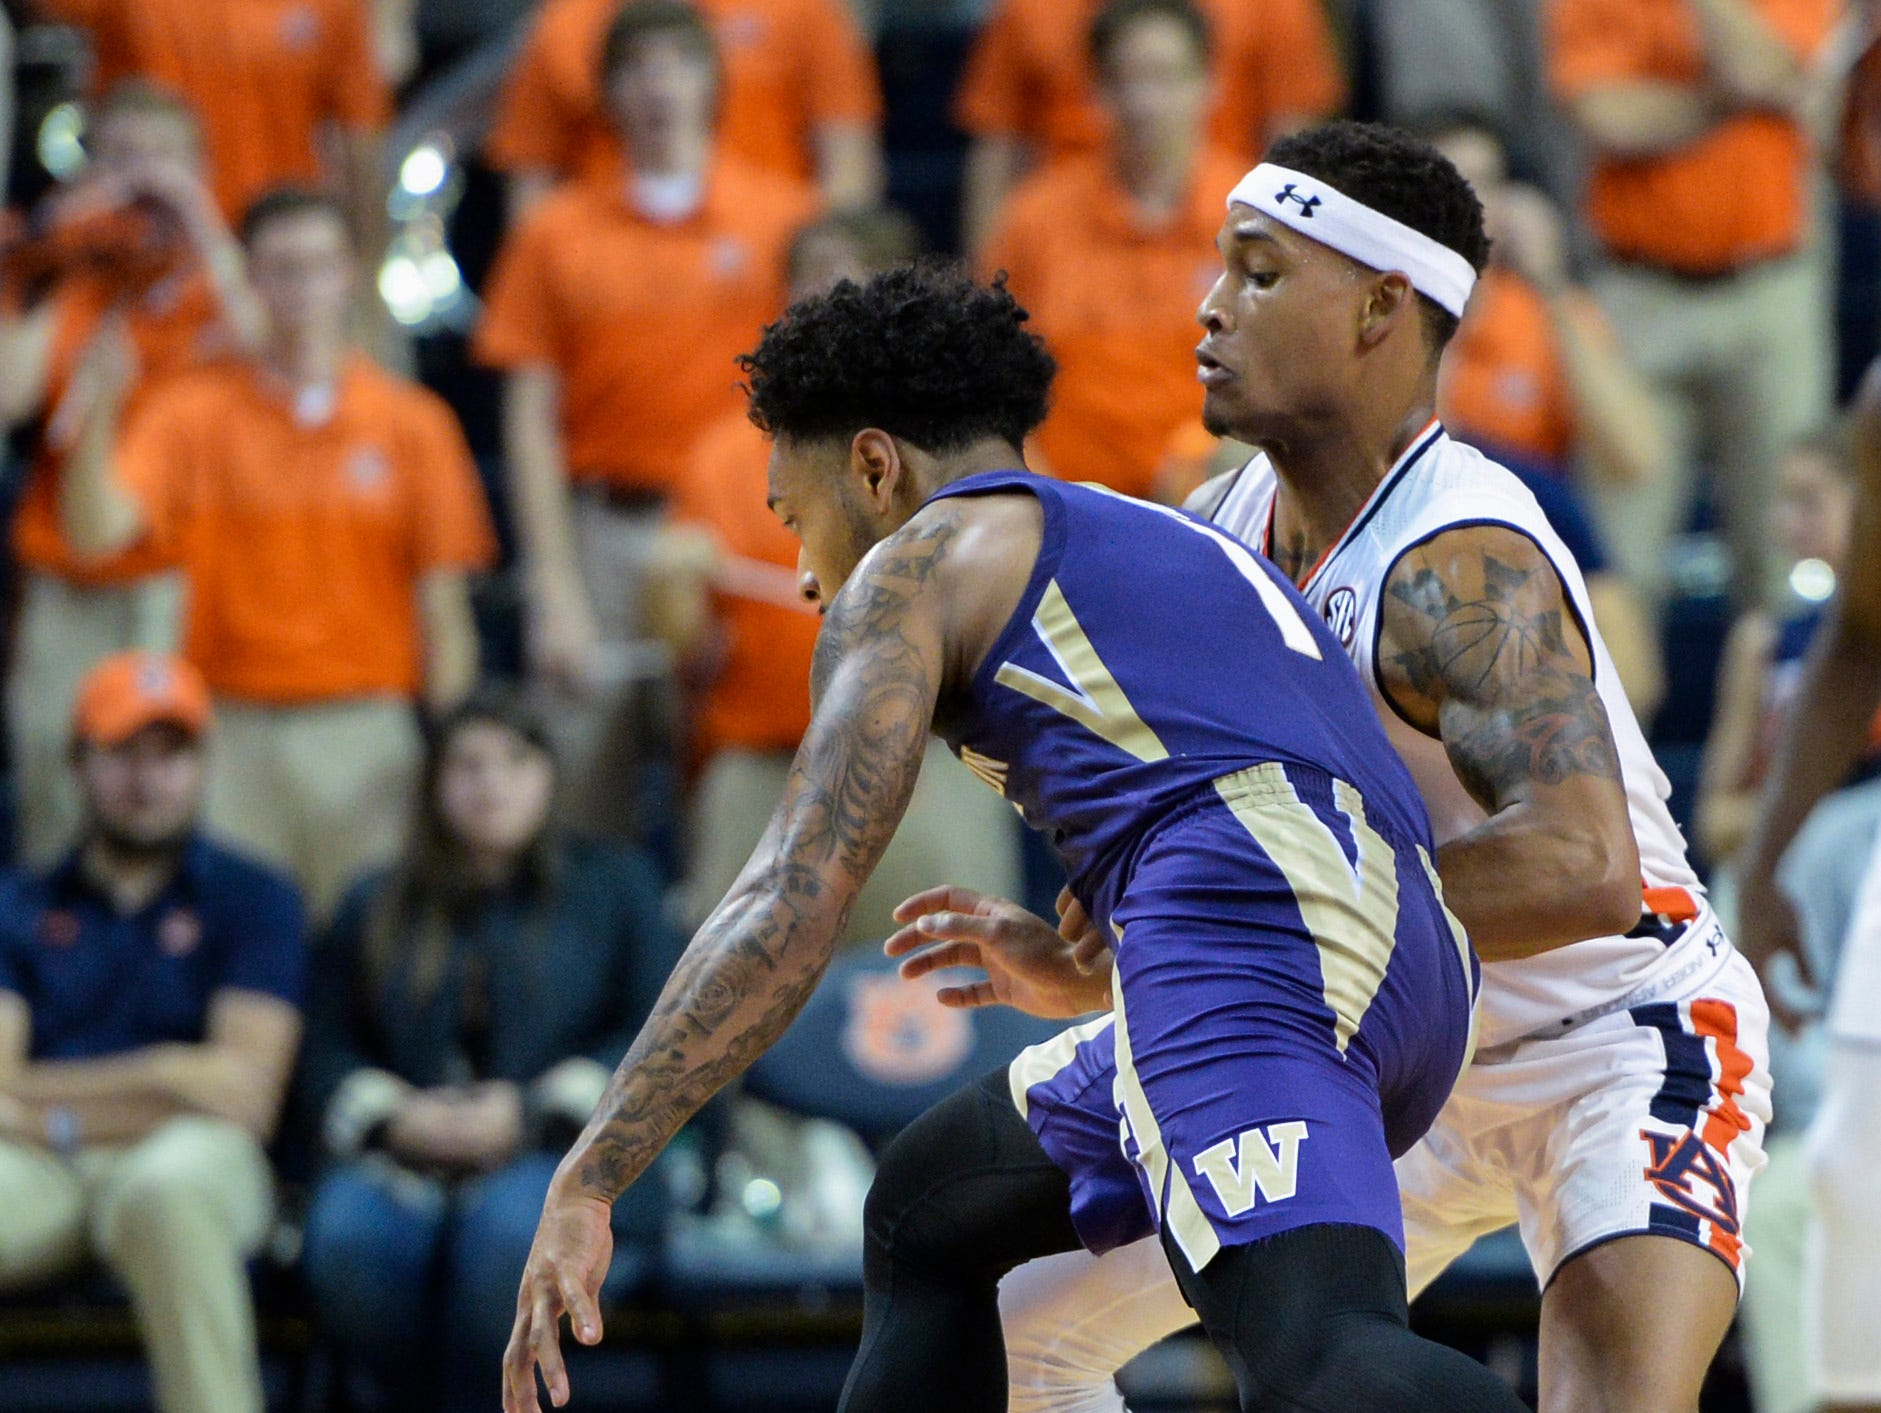 Nov 9, 2018; Auburn, AL, USA; Auburn Tigers guard Bryce Brown (2) fouls Washington Huskies guard David Crisp (1) at Auburn Arena. Mandatory Credit: Julie Bennett-USA TODAY Sports